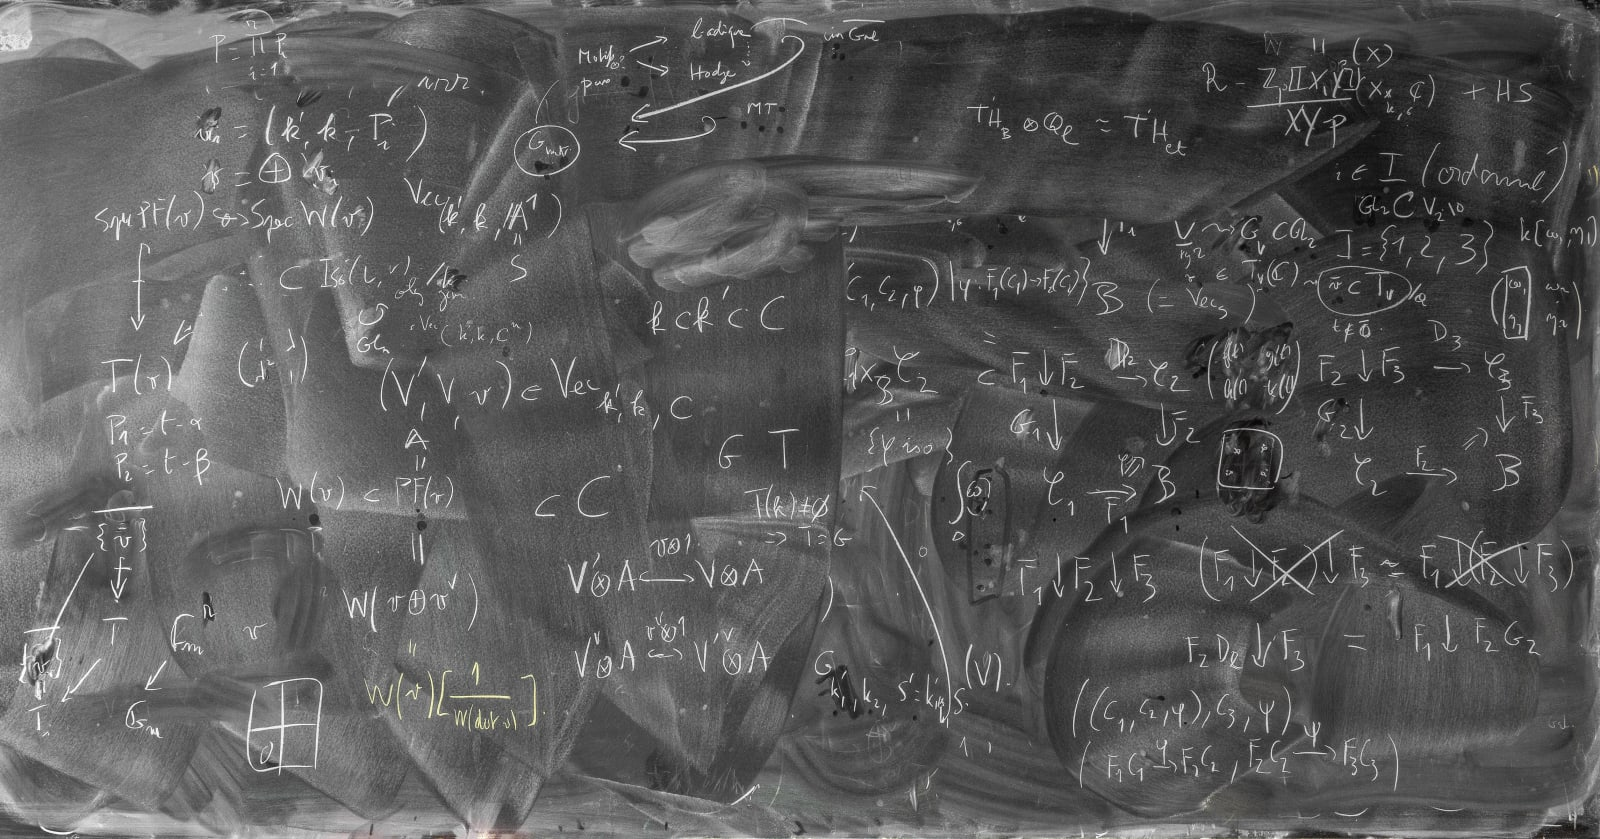 Chalkboard with erasures and mathematical formulas by Bruno Kahn, from the Do Not Erase series by Jessica Wynne